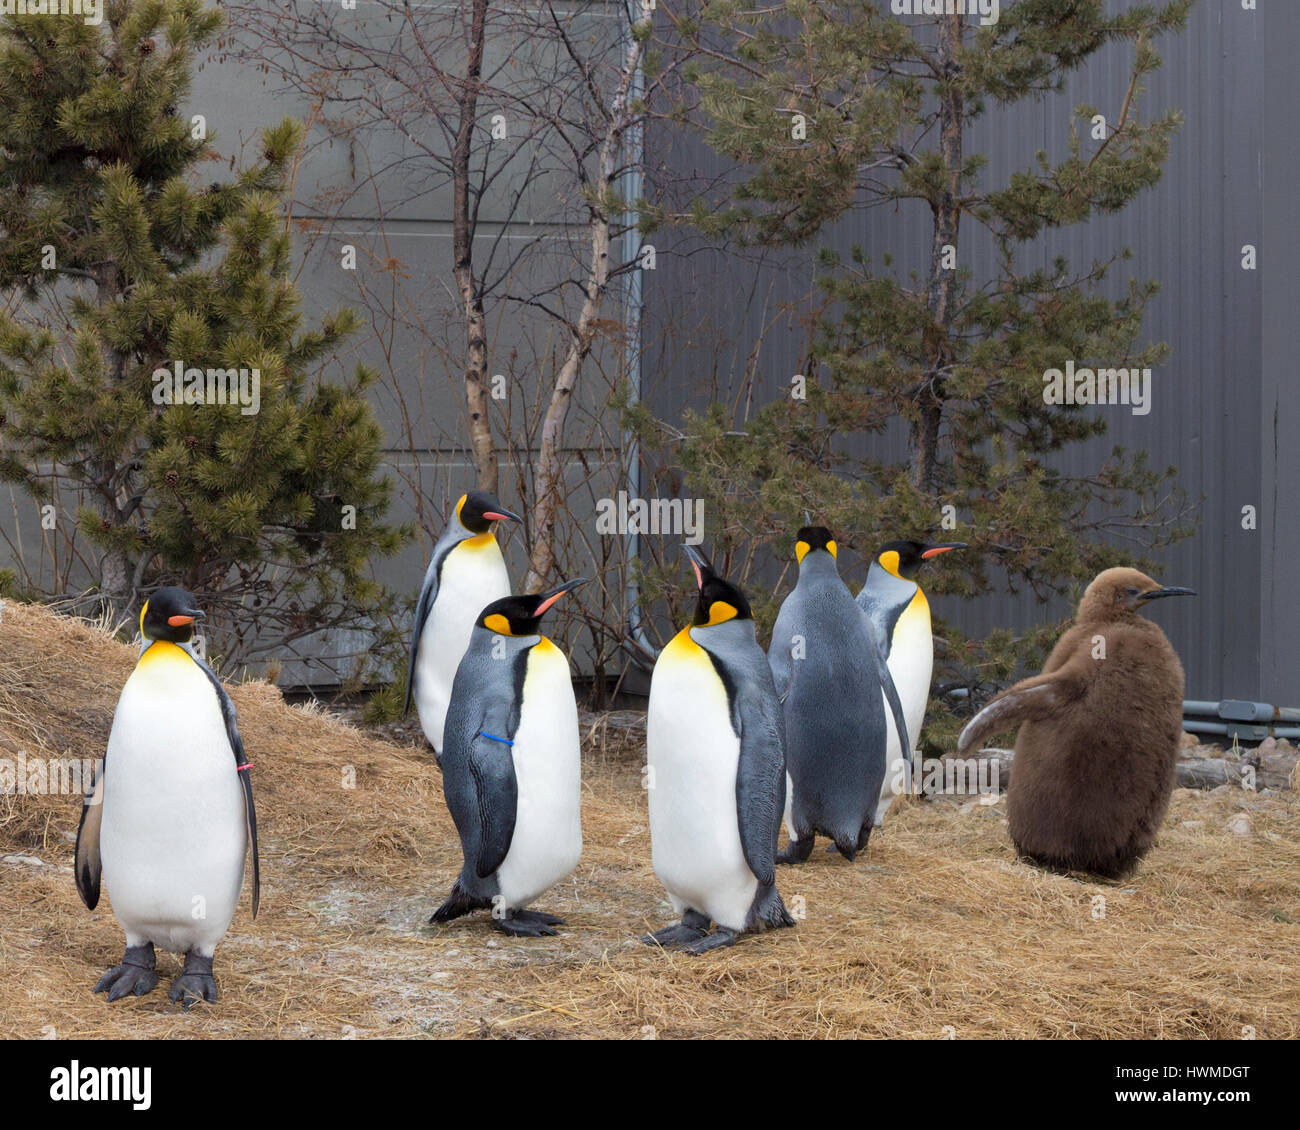 King penguins waiting for their daily walk around the Calgary zoo. Edward, the zoo's 7 month old chick, is named - Stock Image